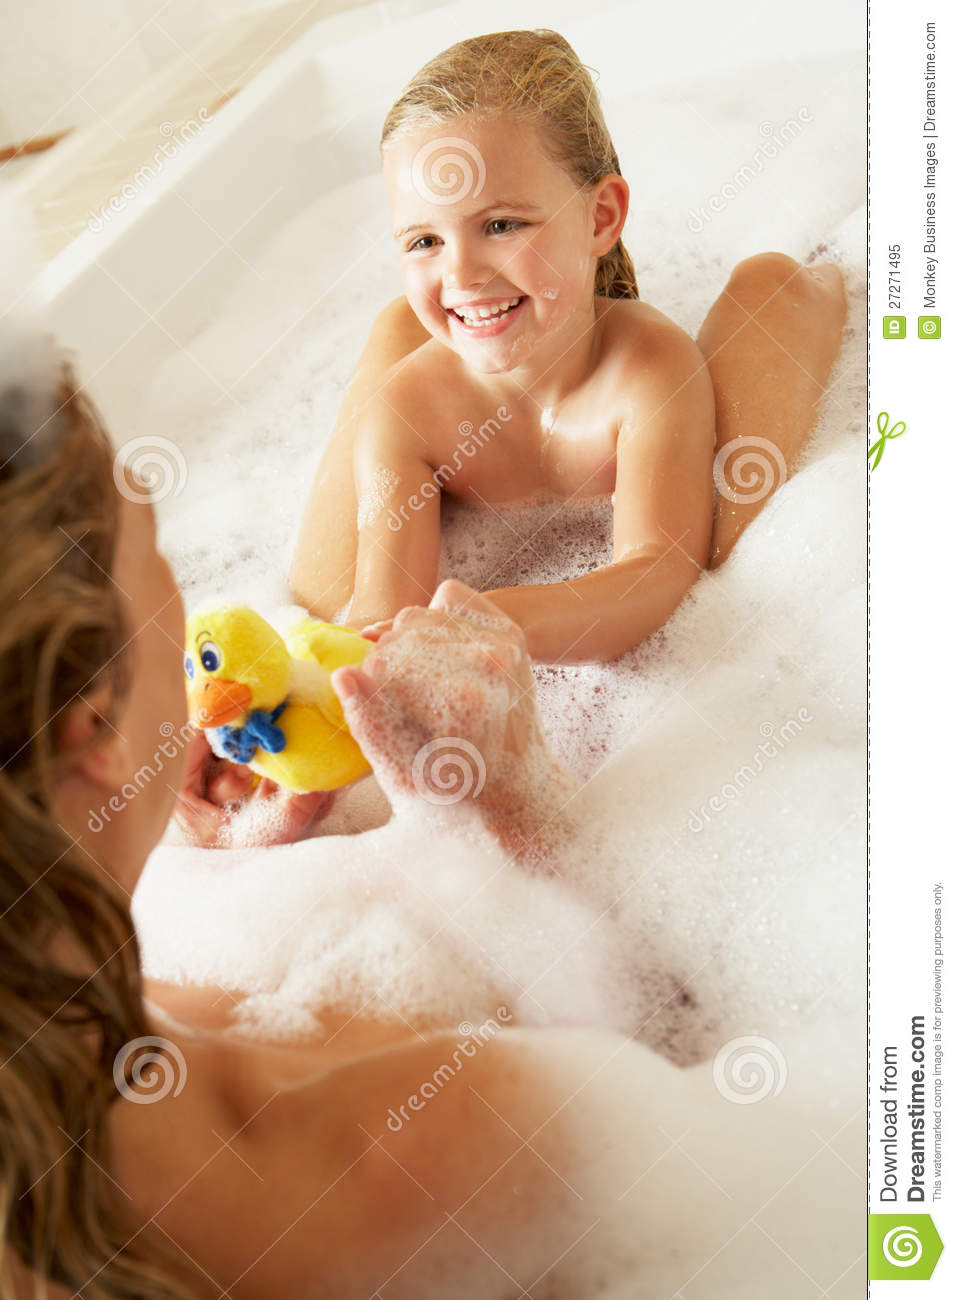 One nude bath mother